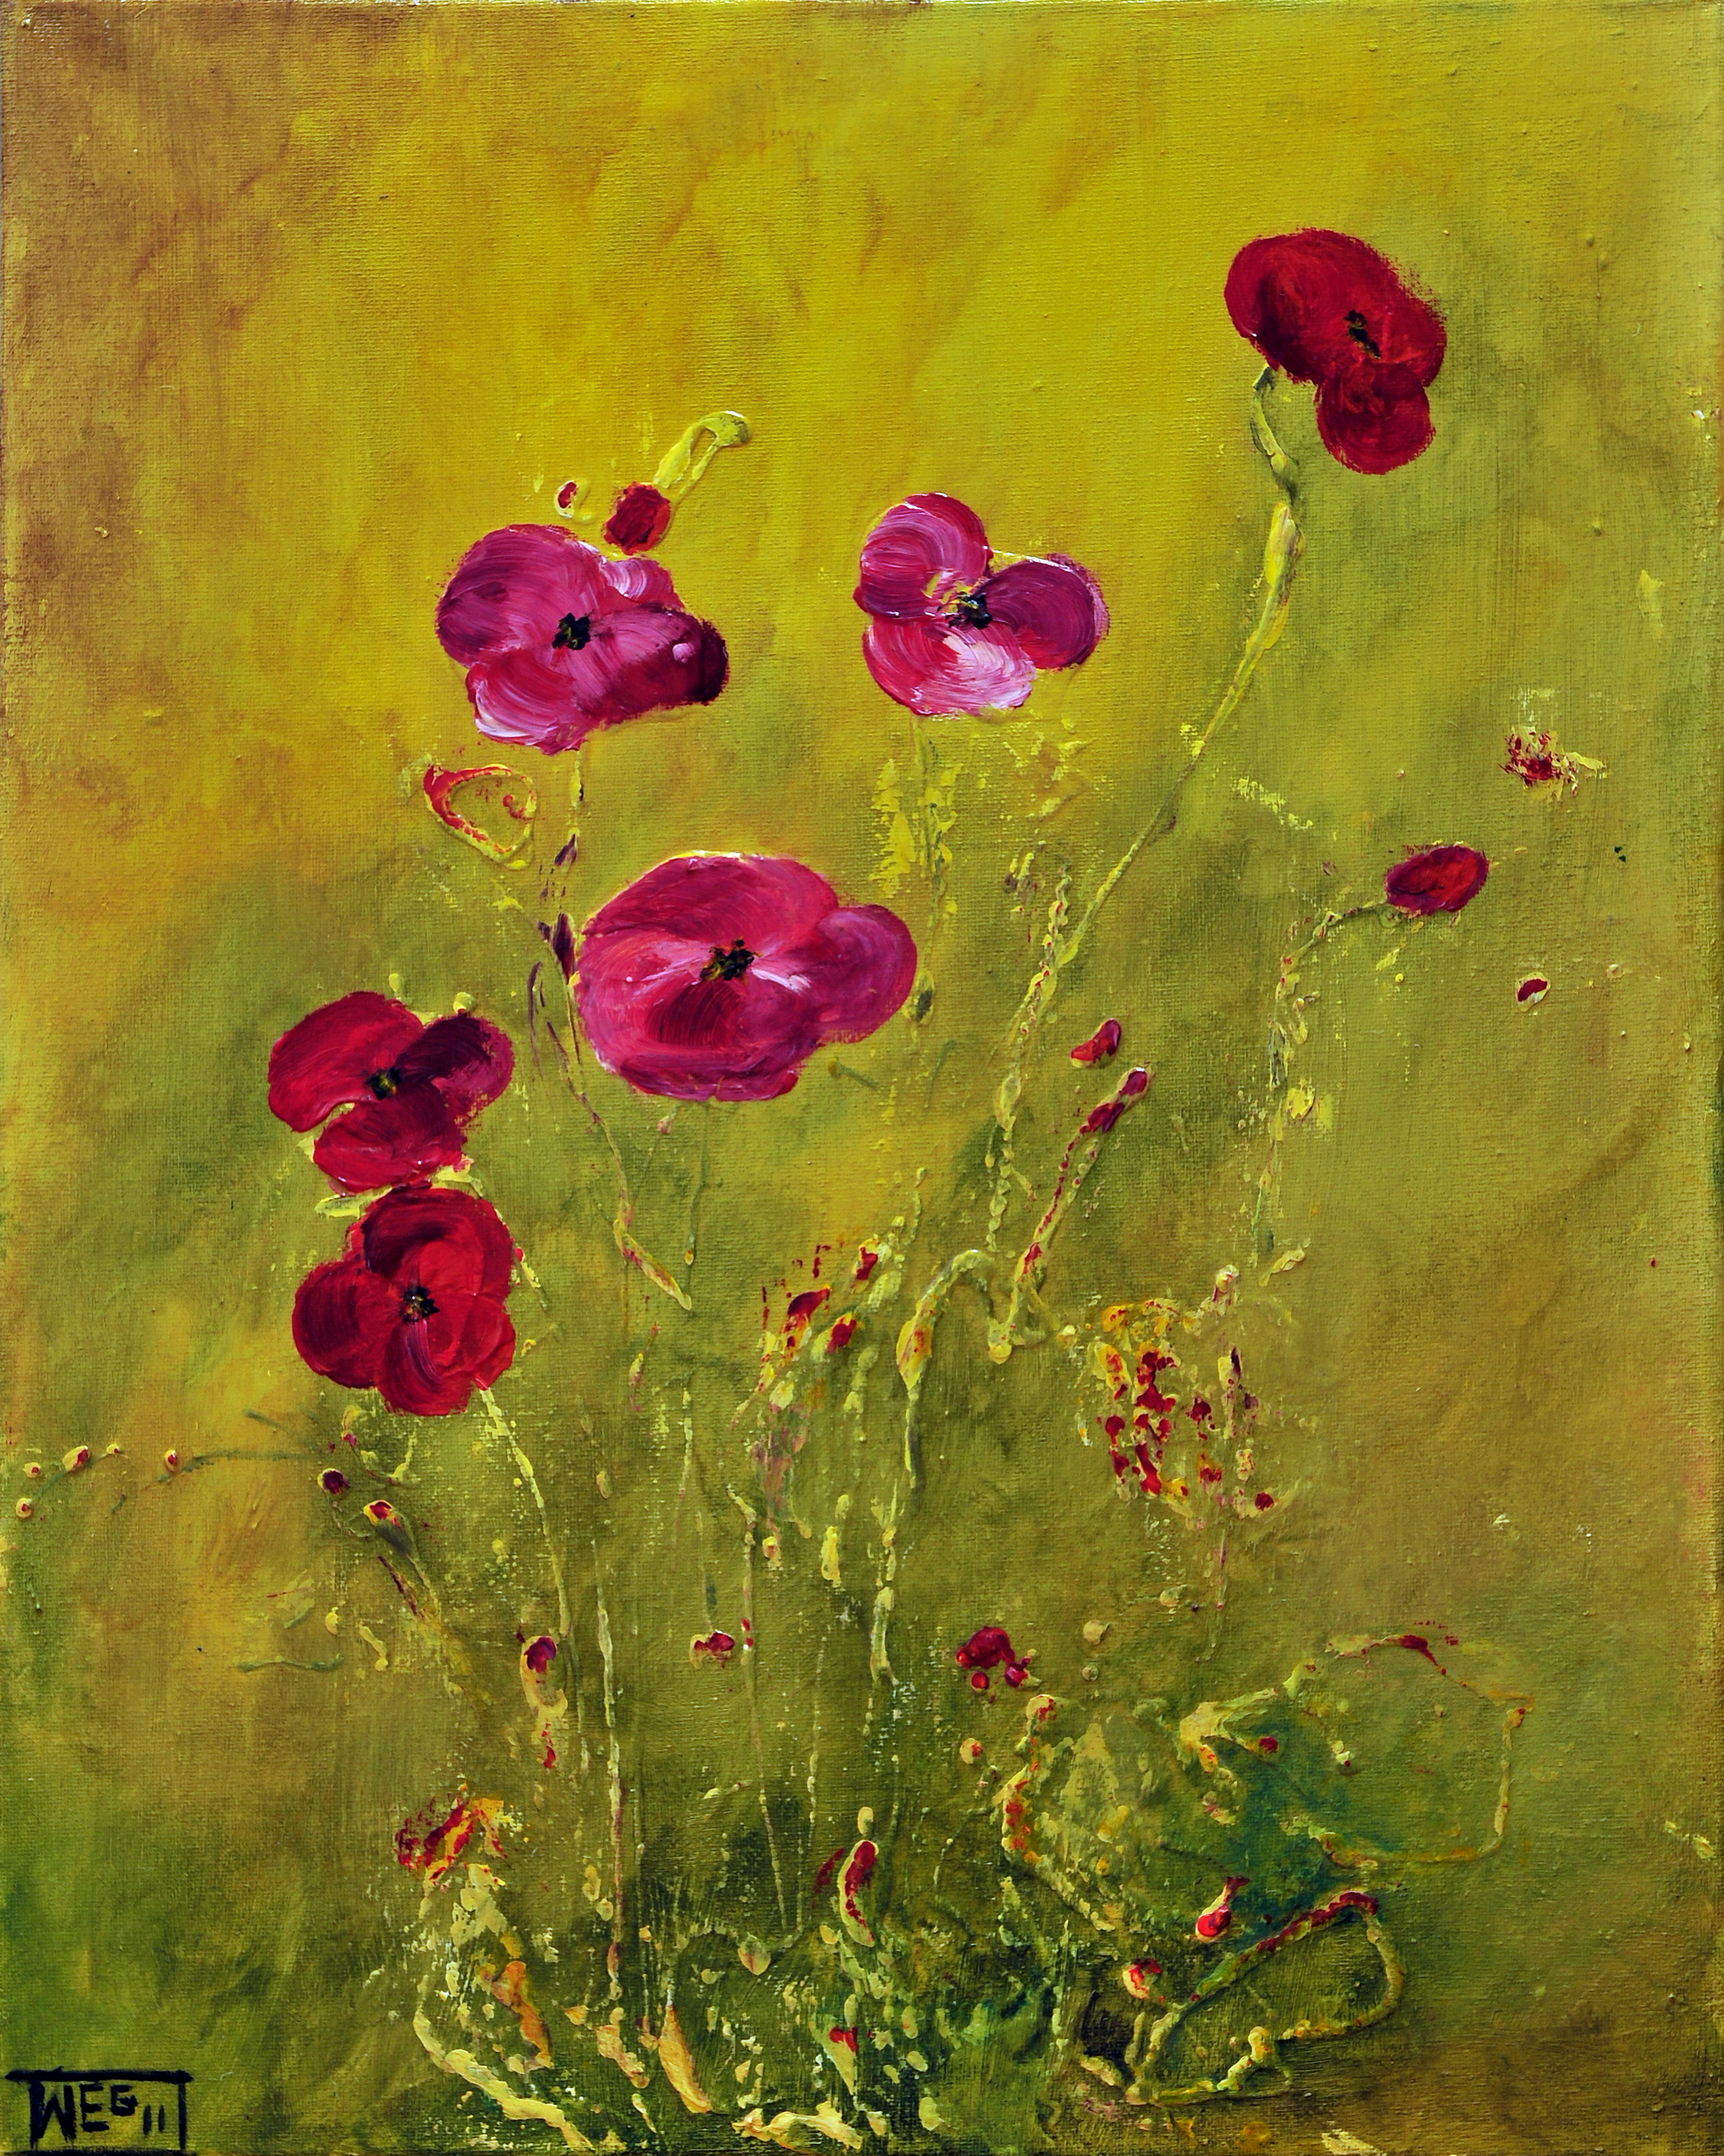 LONELY POPPIES by ARTBYTERESA